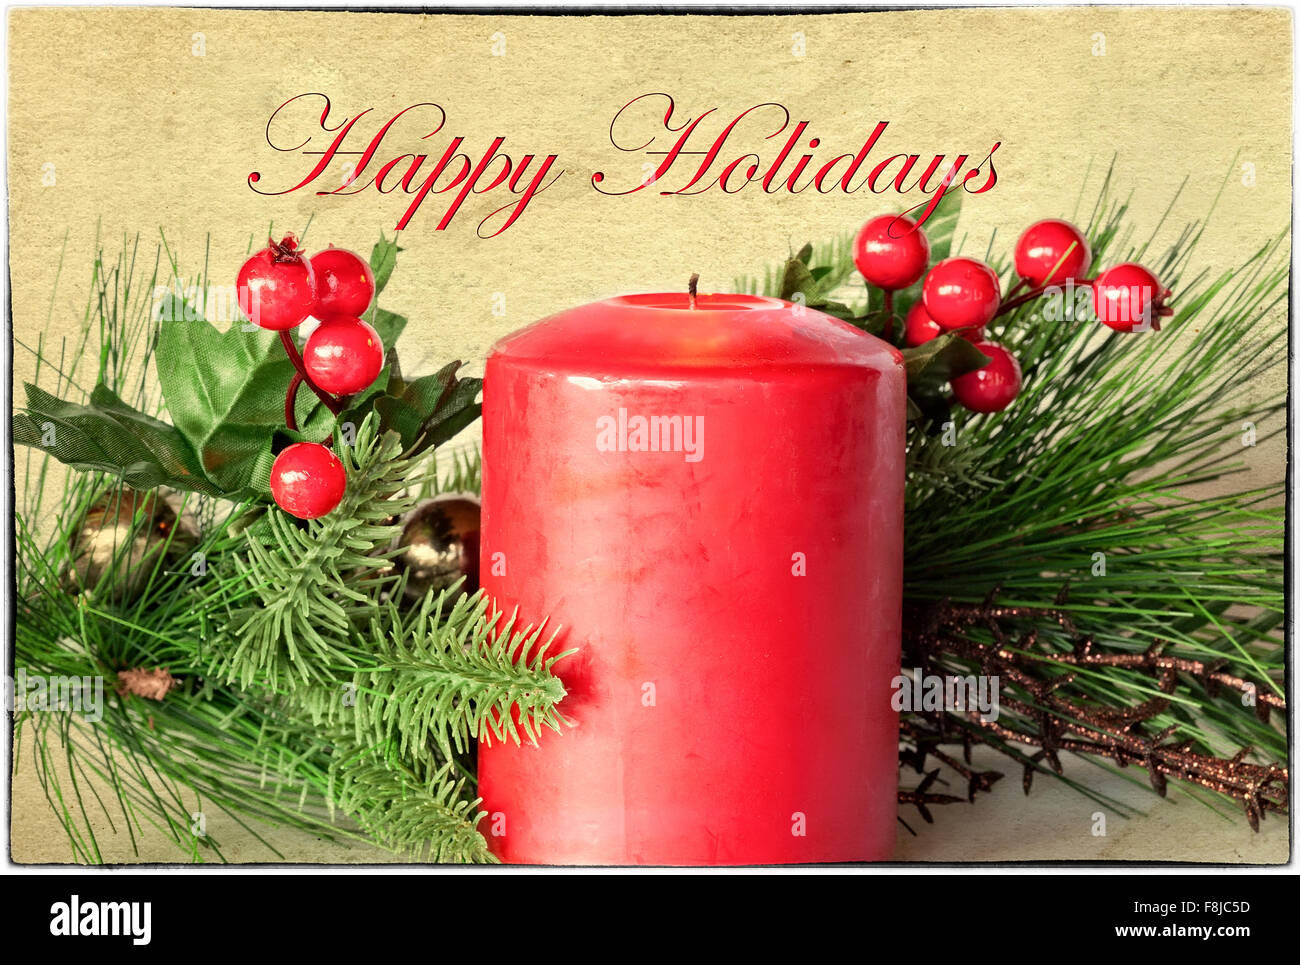 Christmas Greeting card with evergreen,  holly berries, red candle border and Happy Holidays text - Stock Image